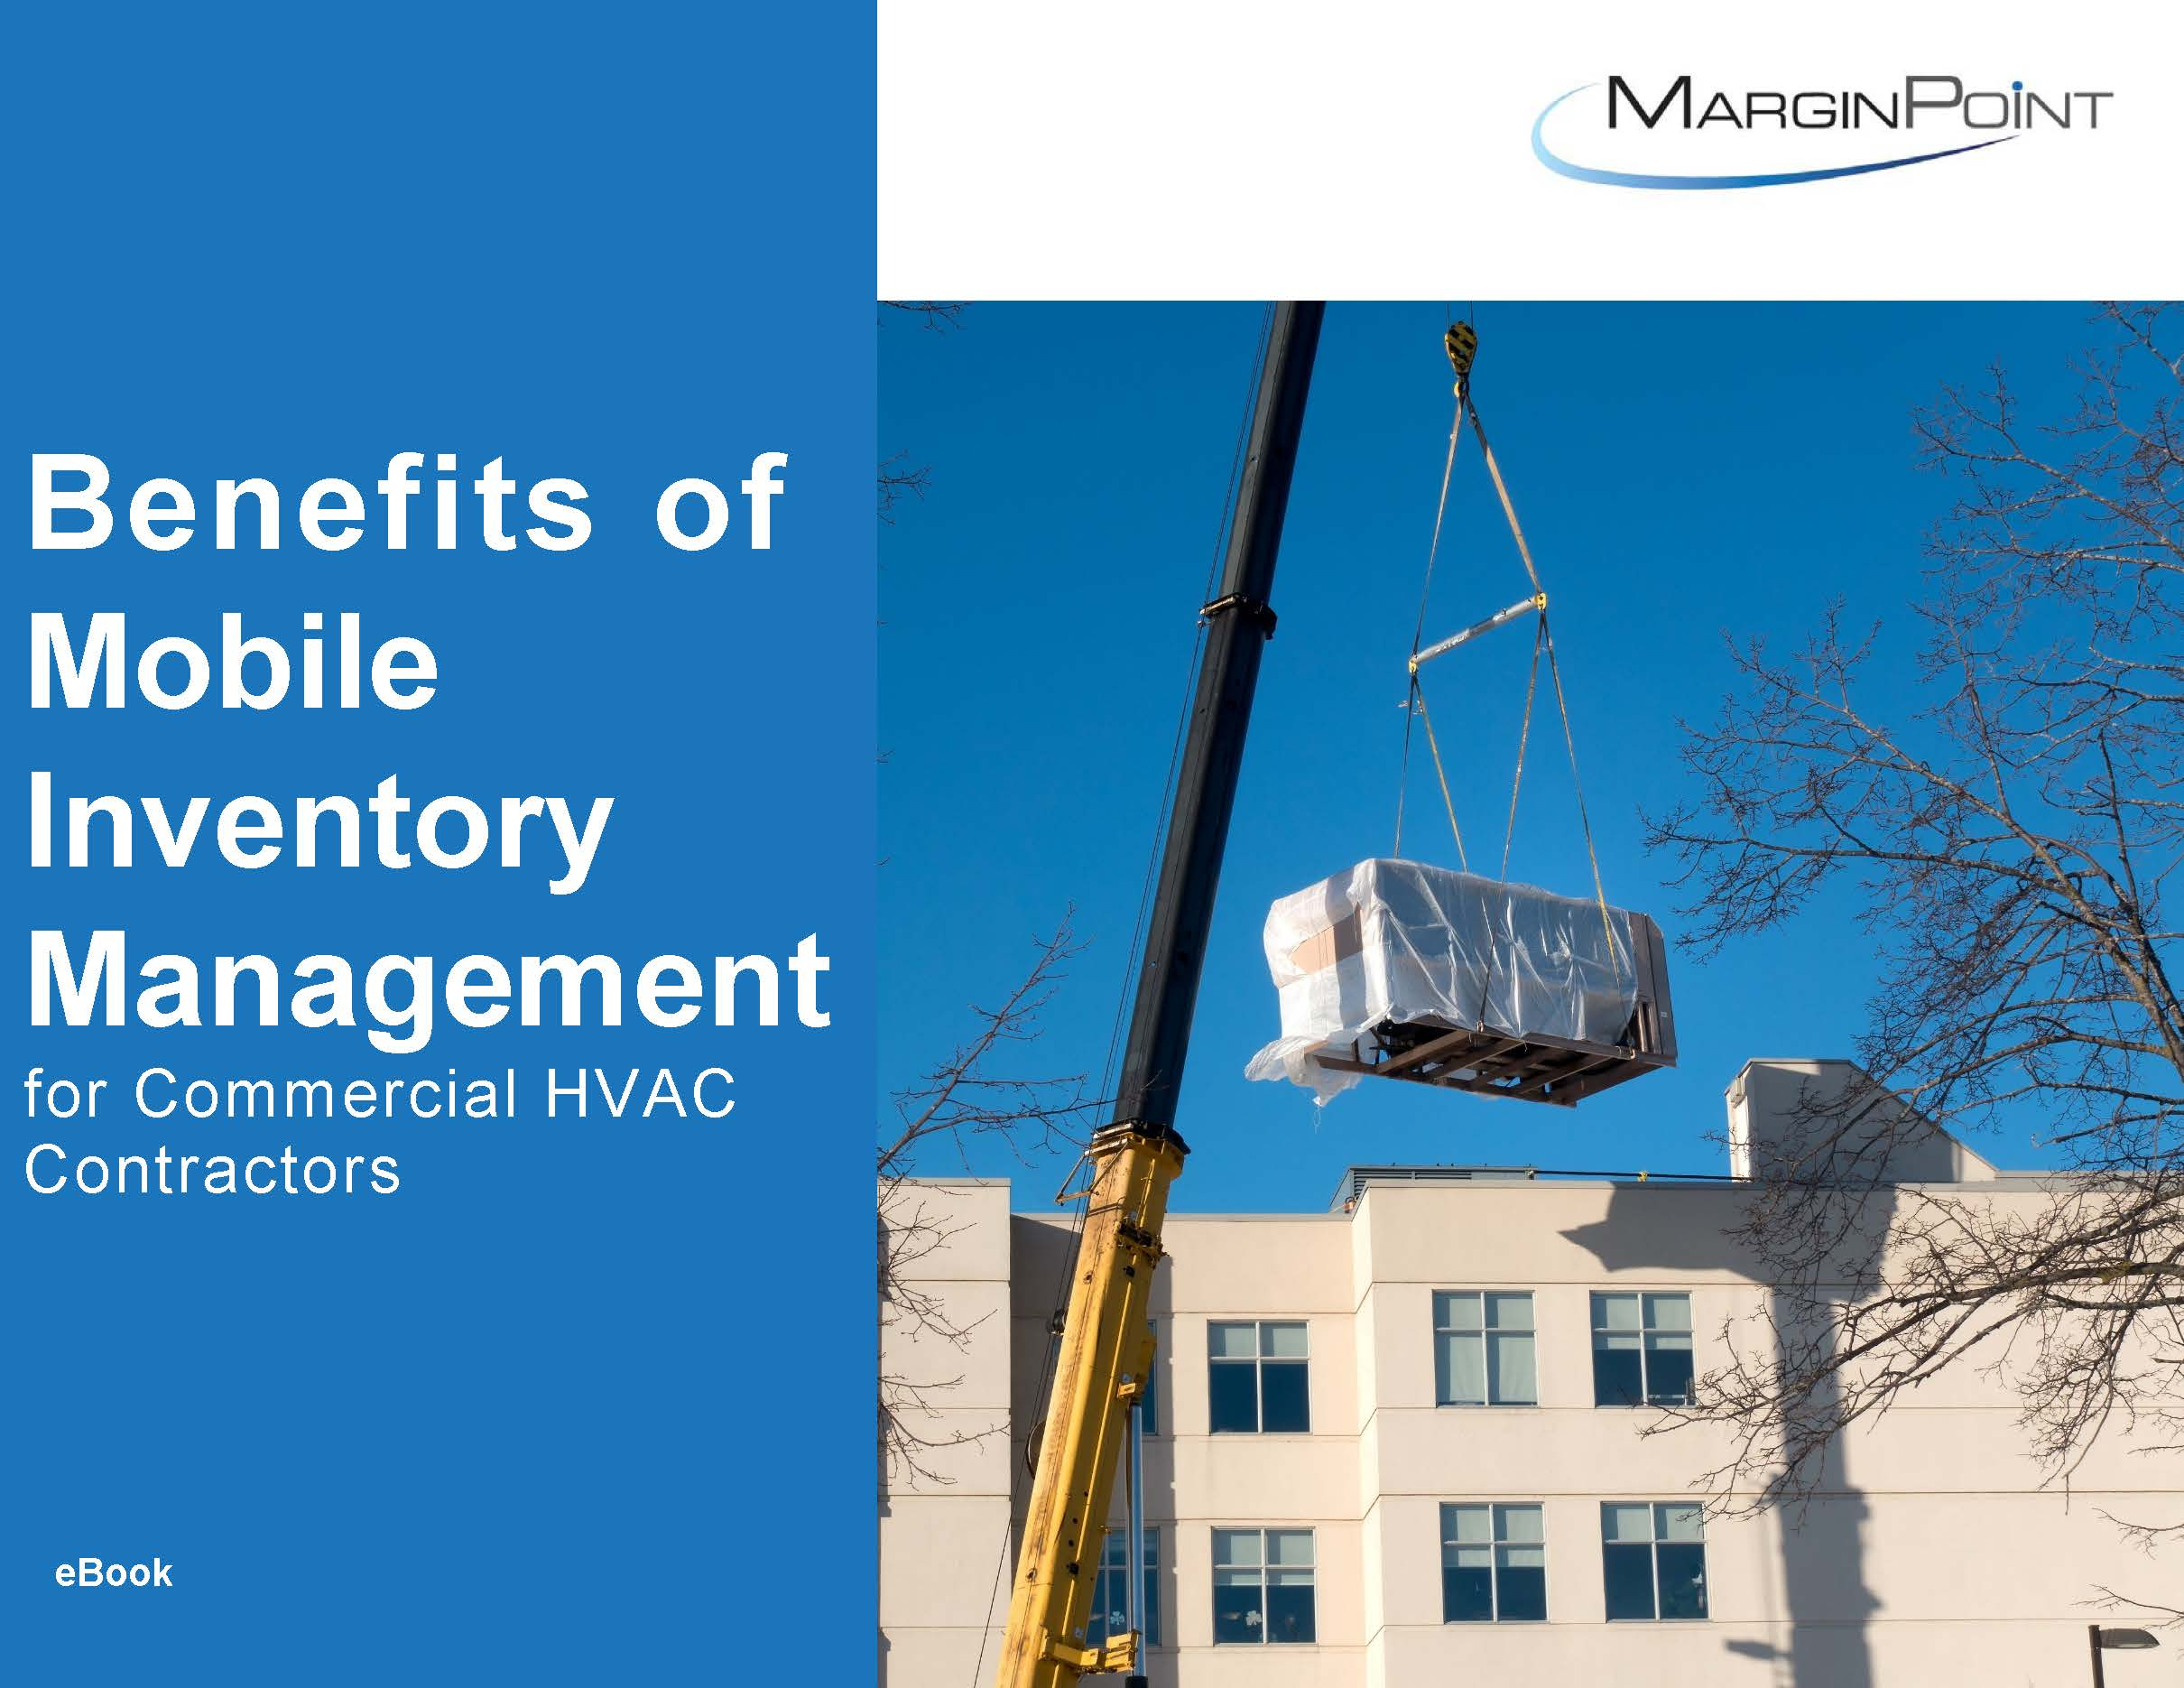 Benefits-eBook-CommCont-v6_Page_1 Download ebook benefits of Mobile Inventory Management for HVAC Contractors